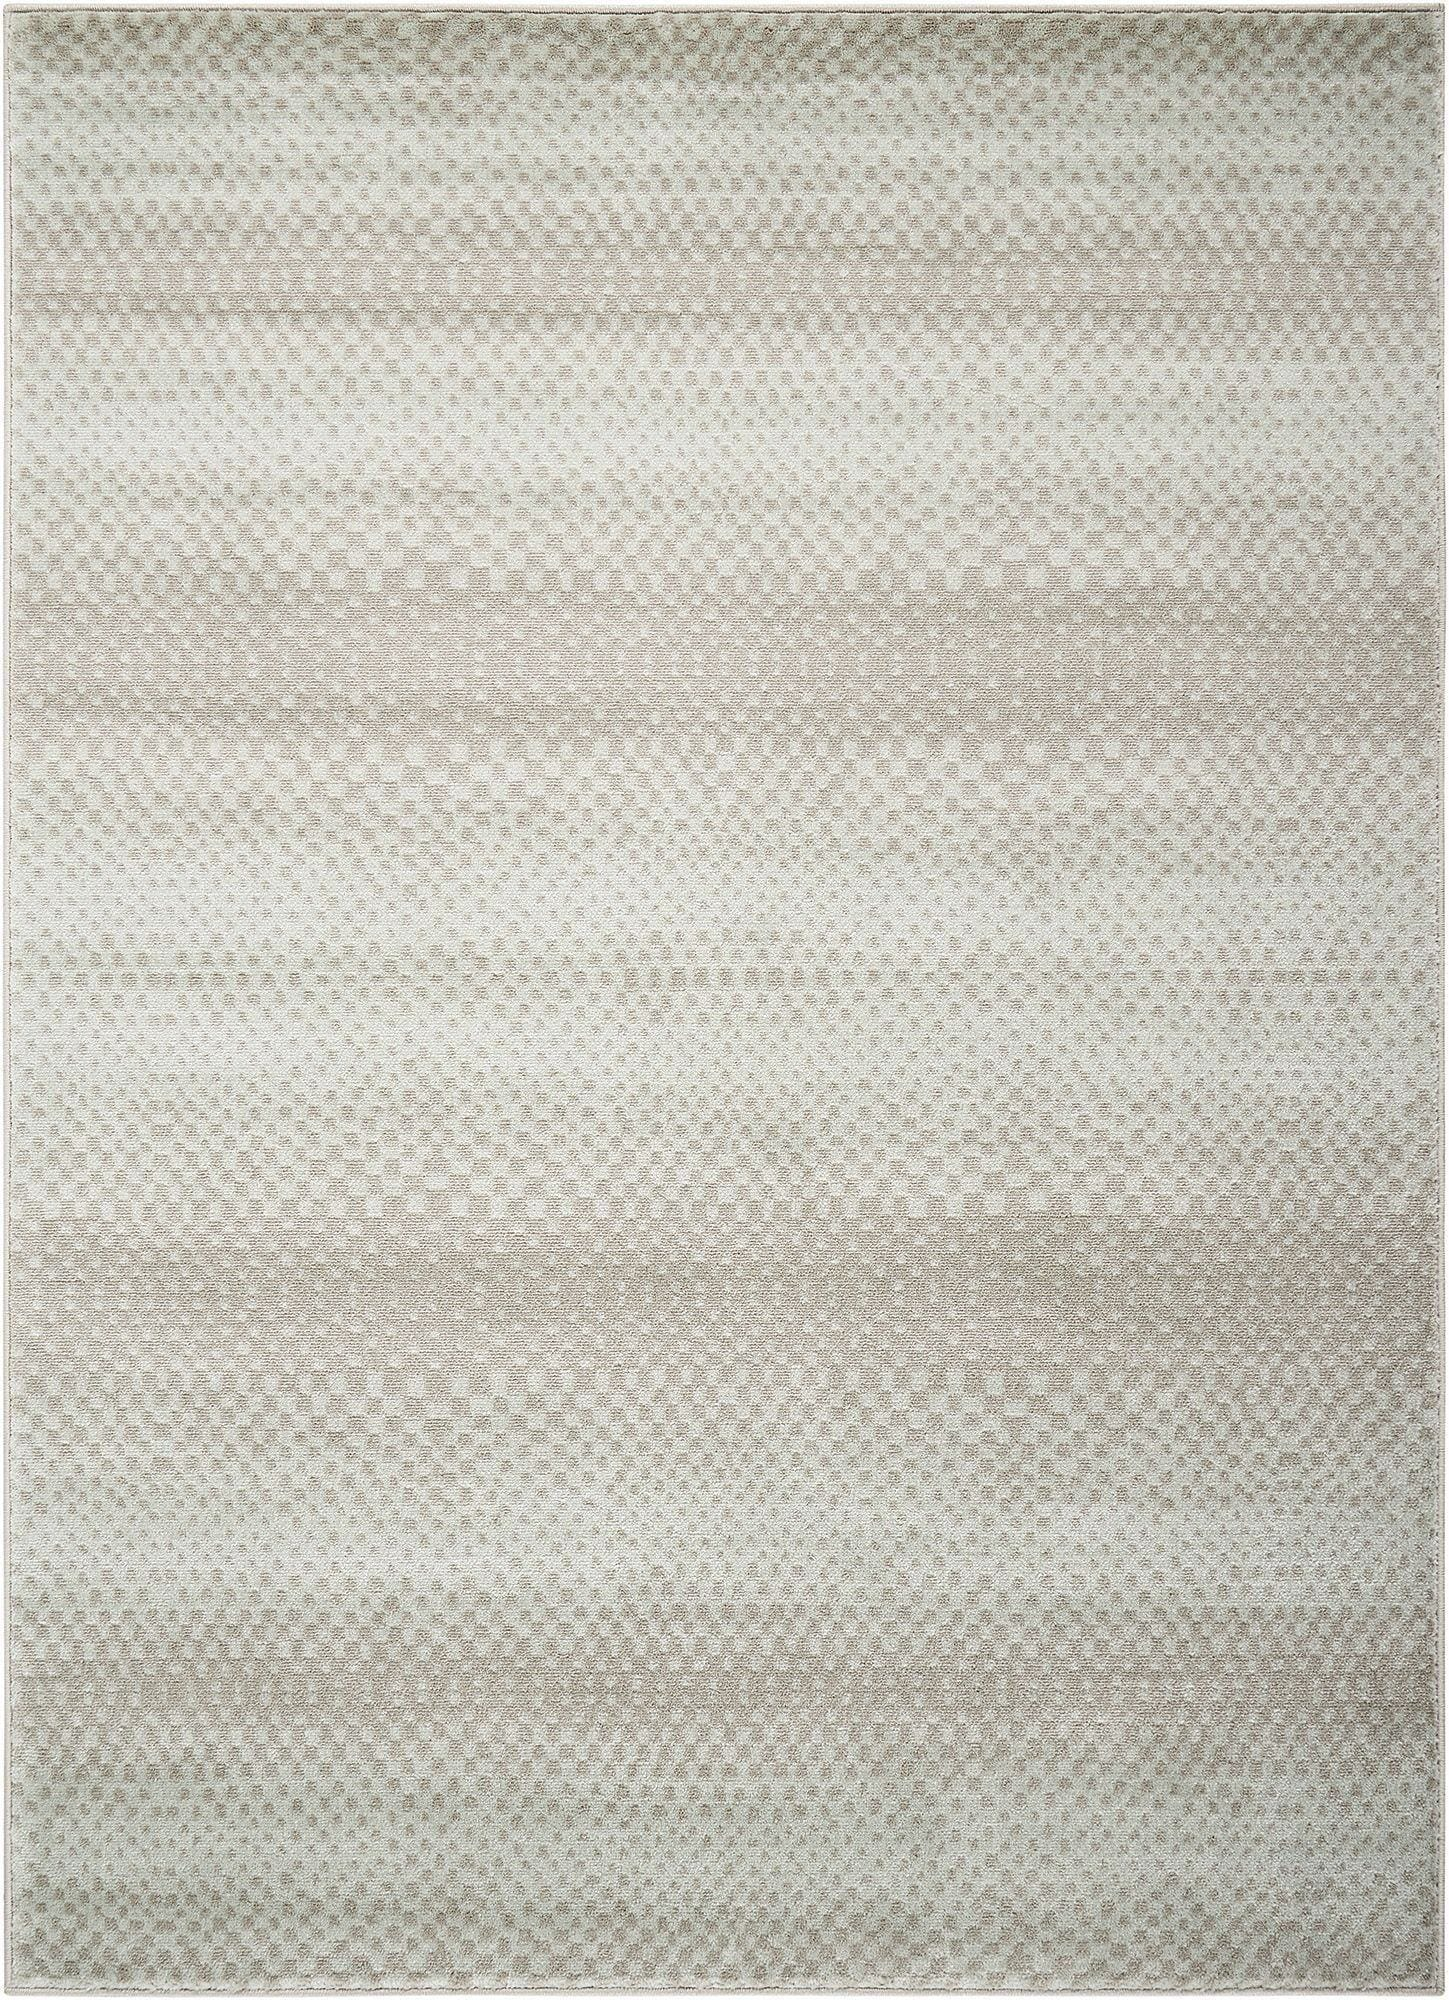 970219 Multi Tonal Light Blue Gray Rug 5 3 X 7 3 By Scott Living